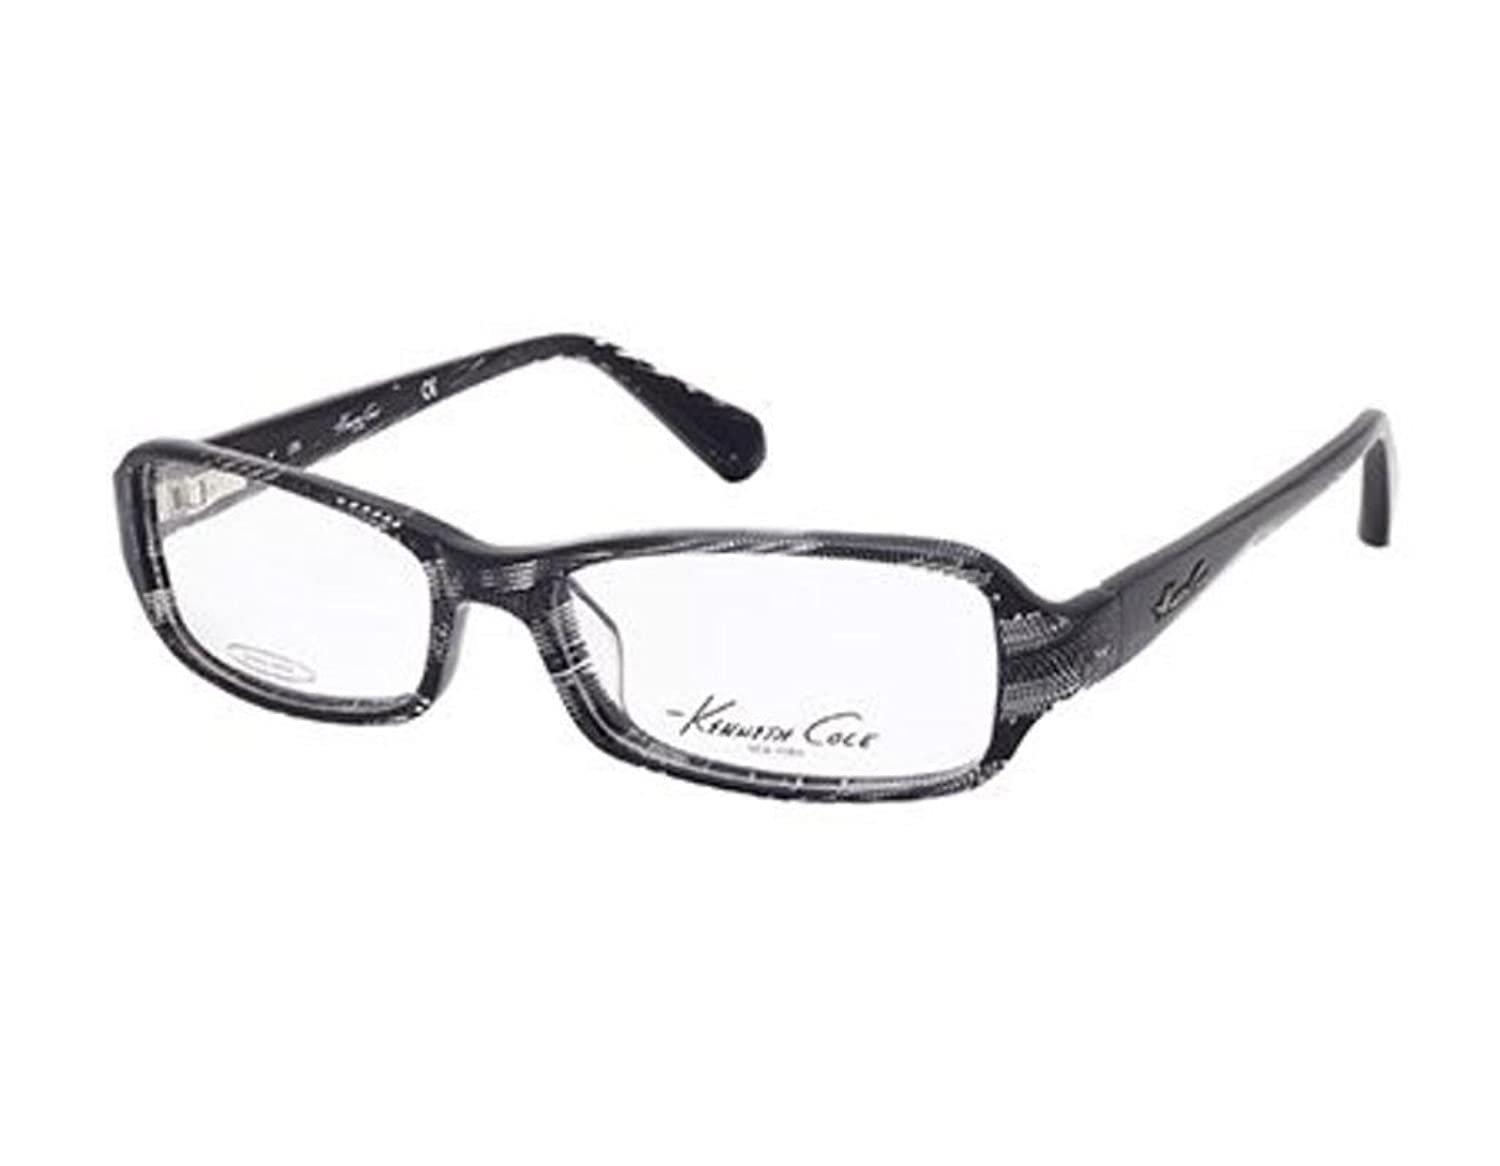 80% OFF Kenneth Cole New York Montura de Gafas KC 0191 003 negro 52MM 38037db7b91